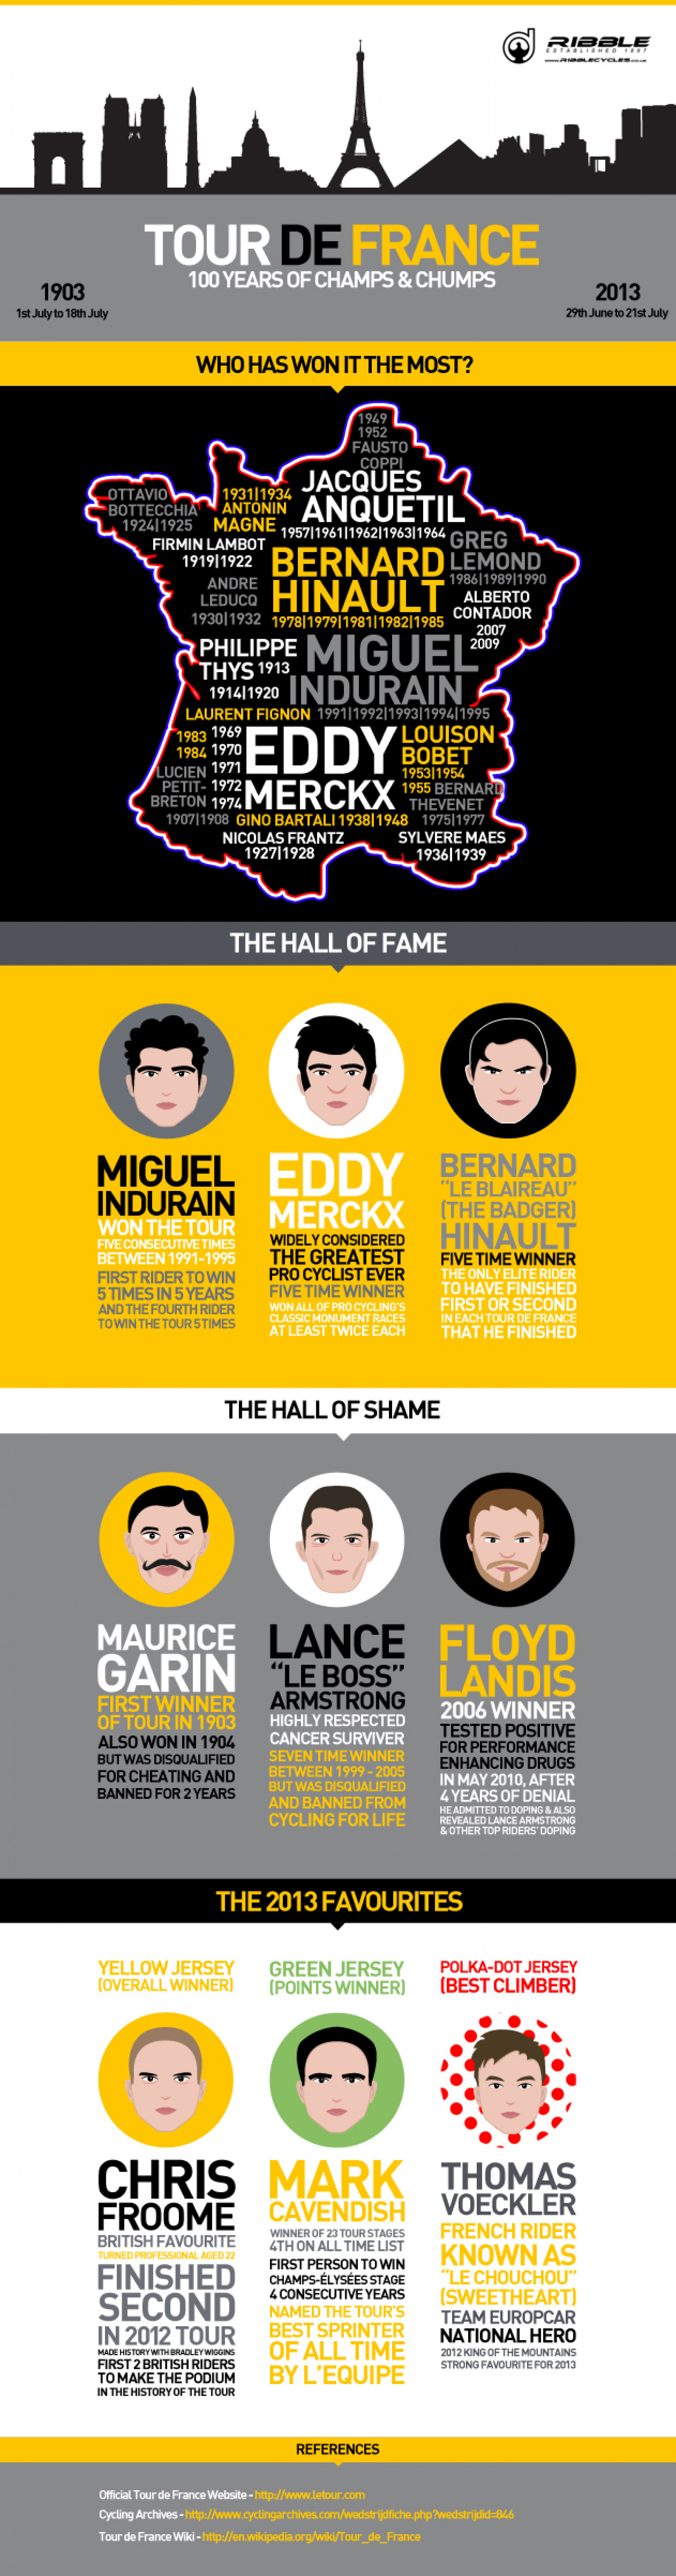 Tour de France - 100 years of Champs & Chumps from Ribble Cycles Infographic